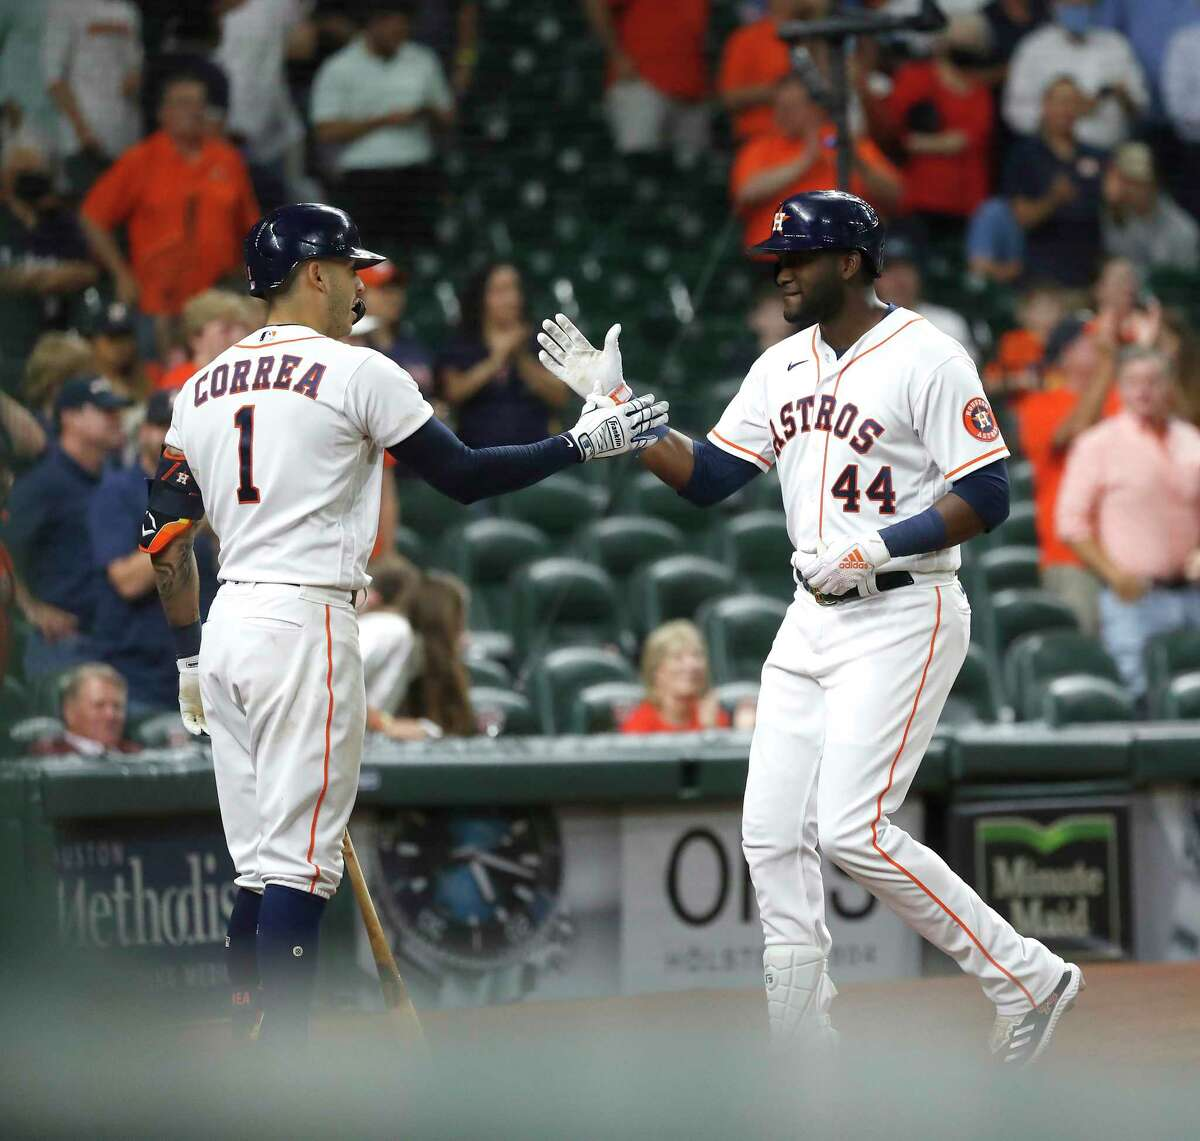 Astros designated hitter Yordan Alvarez (44) celebrates with Carlos Correa after hitting a home run off during the eighth inning Wednesday at Minute Maid Park.